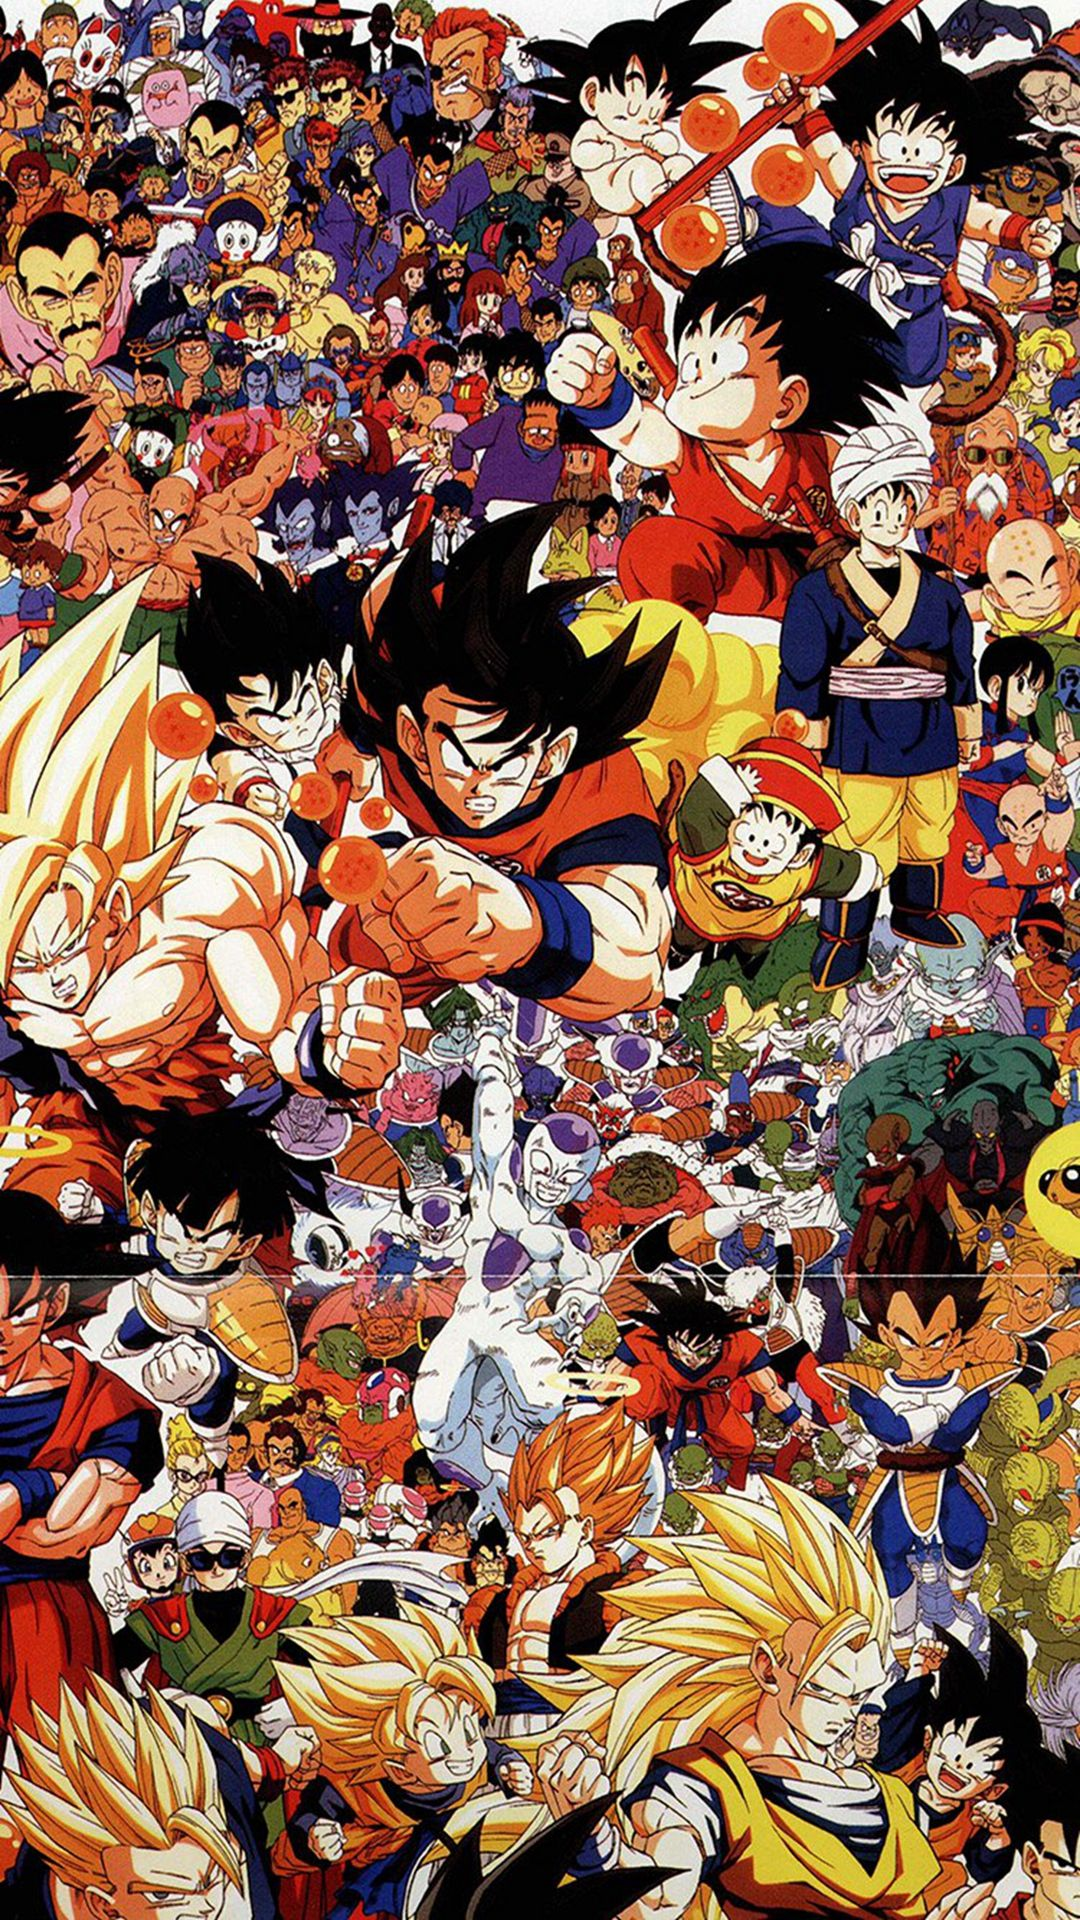 Dragonball Full Art Illust Game Anime iPhone 6 wallpaper - Come check out our luxury phone cases ...